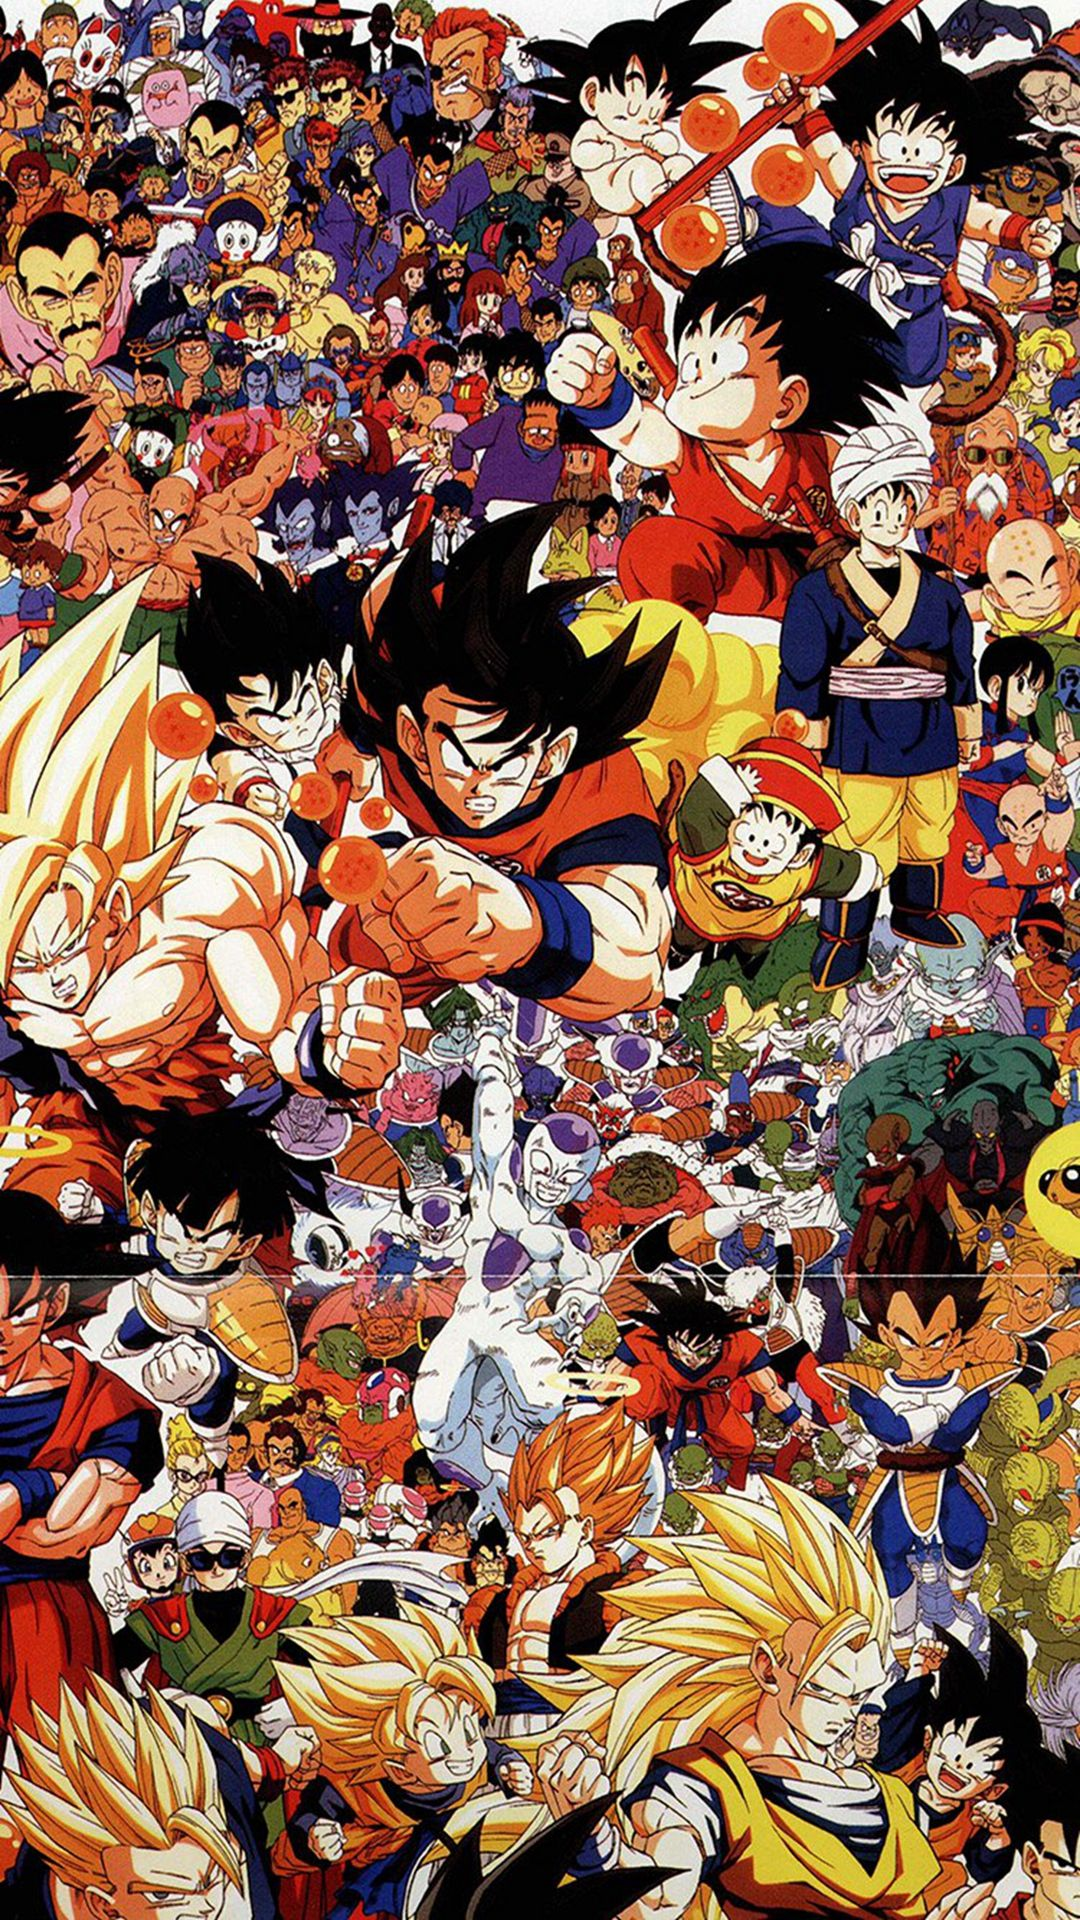 Dragonball Full Art Illust Game Anime iPhone 6 wallpaper - Come check out our luxury phone cases ...